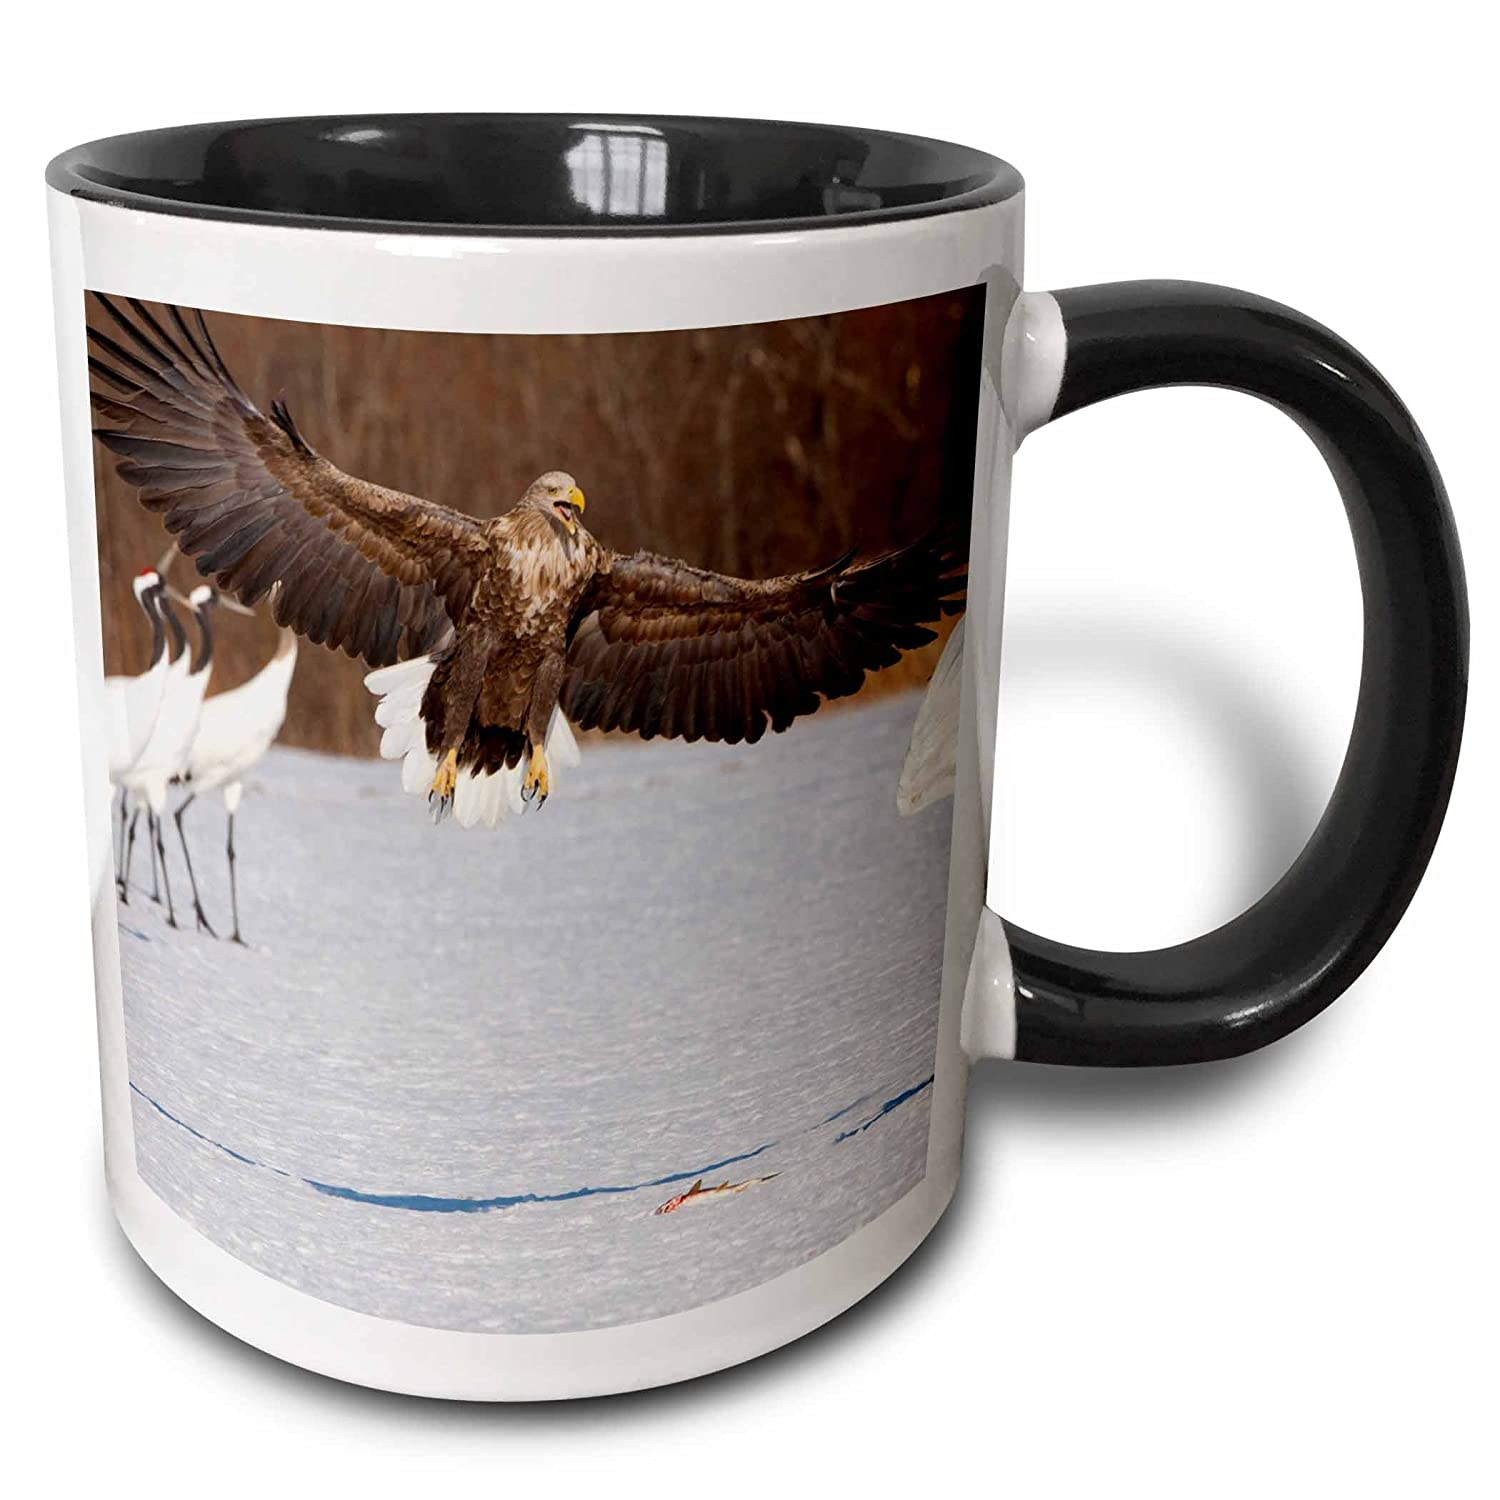 Buy 3drose 3drose Birds White Tailed Sea Eagle Japanese Crane Japan As15 Awo0007 Art Wolfe Two Tone Black Mug 11oz Mug 132723 4 Black White Online At Low Prices In India Amazon In